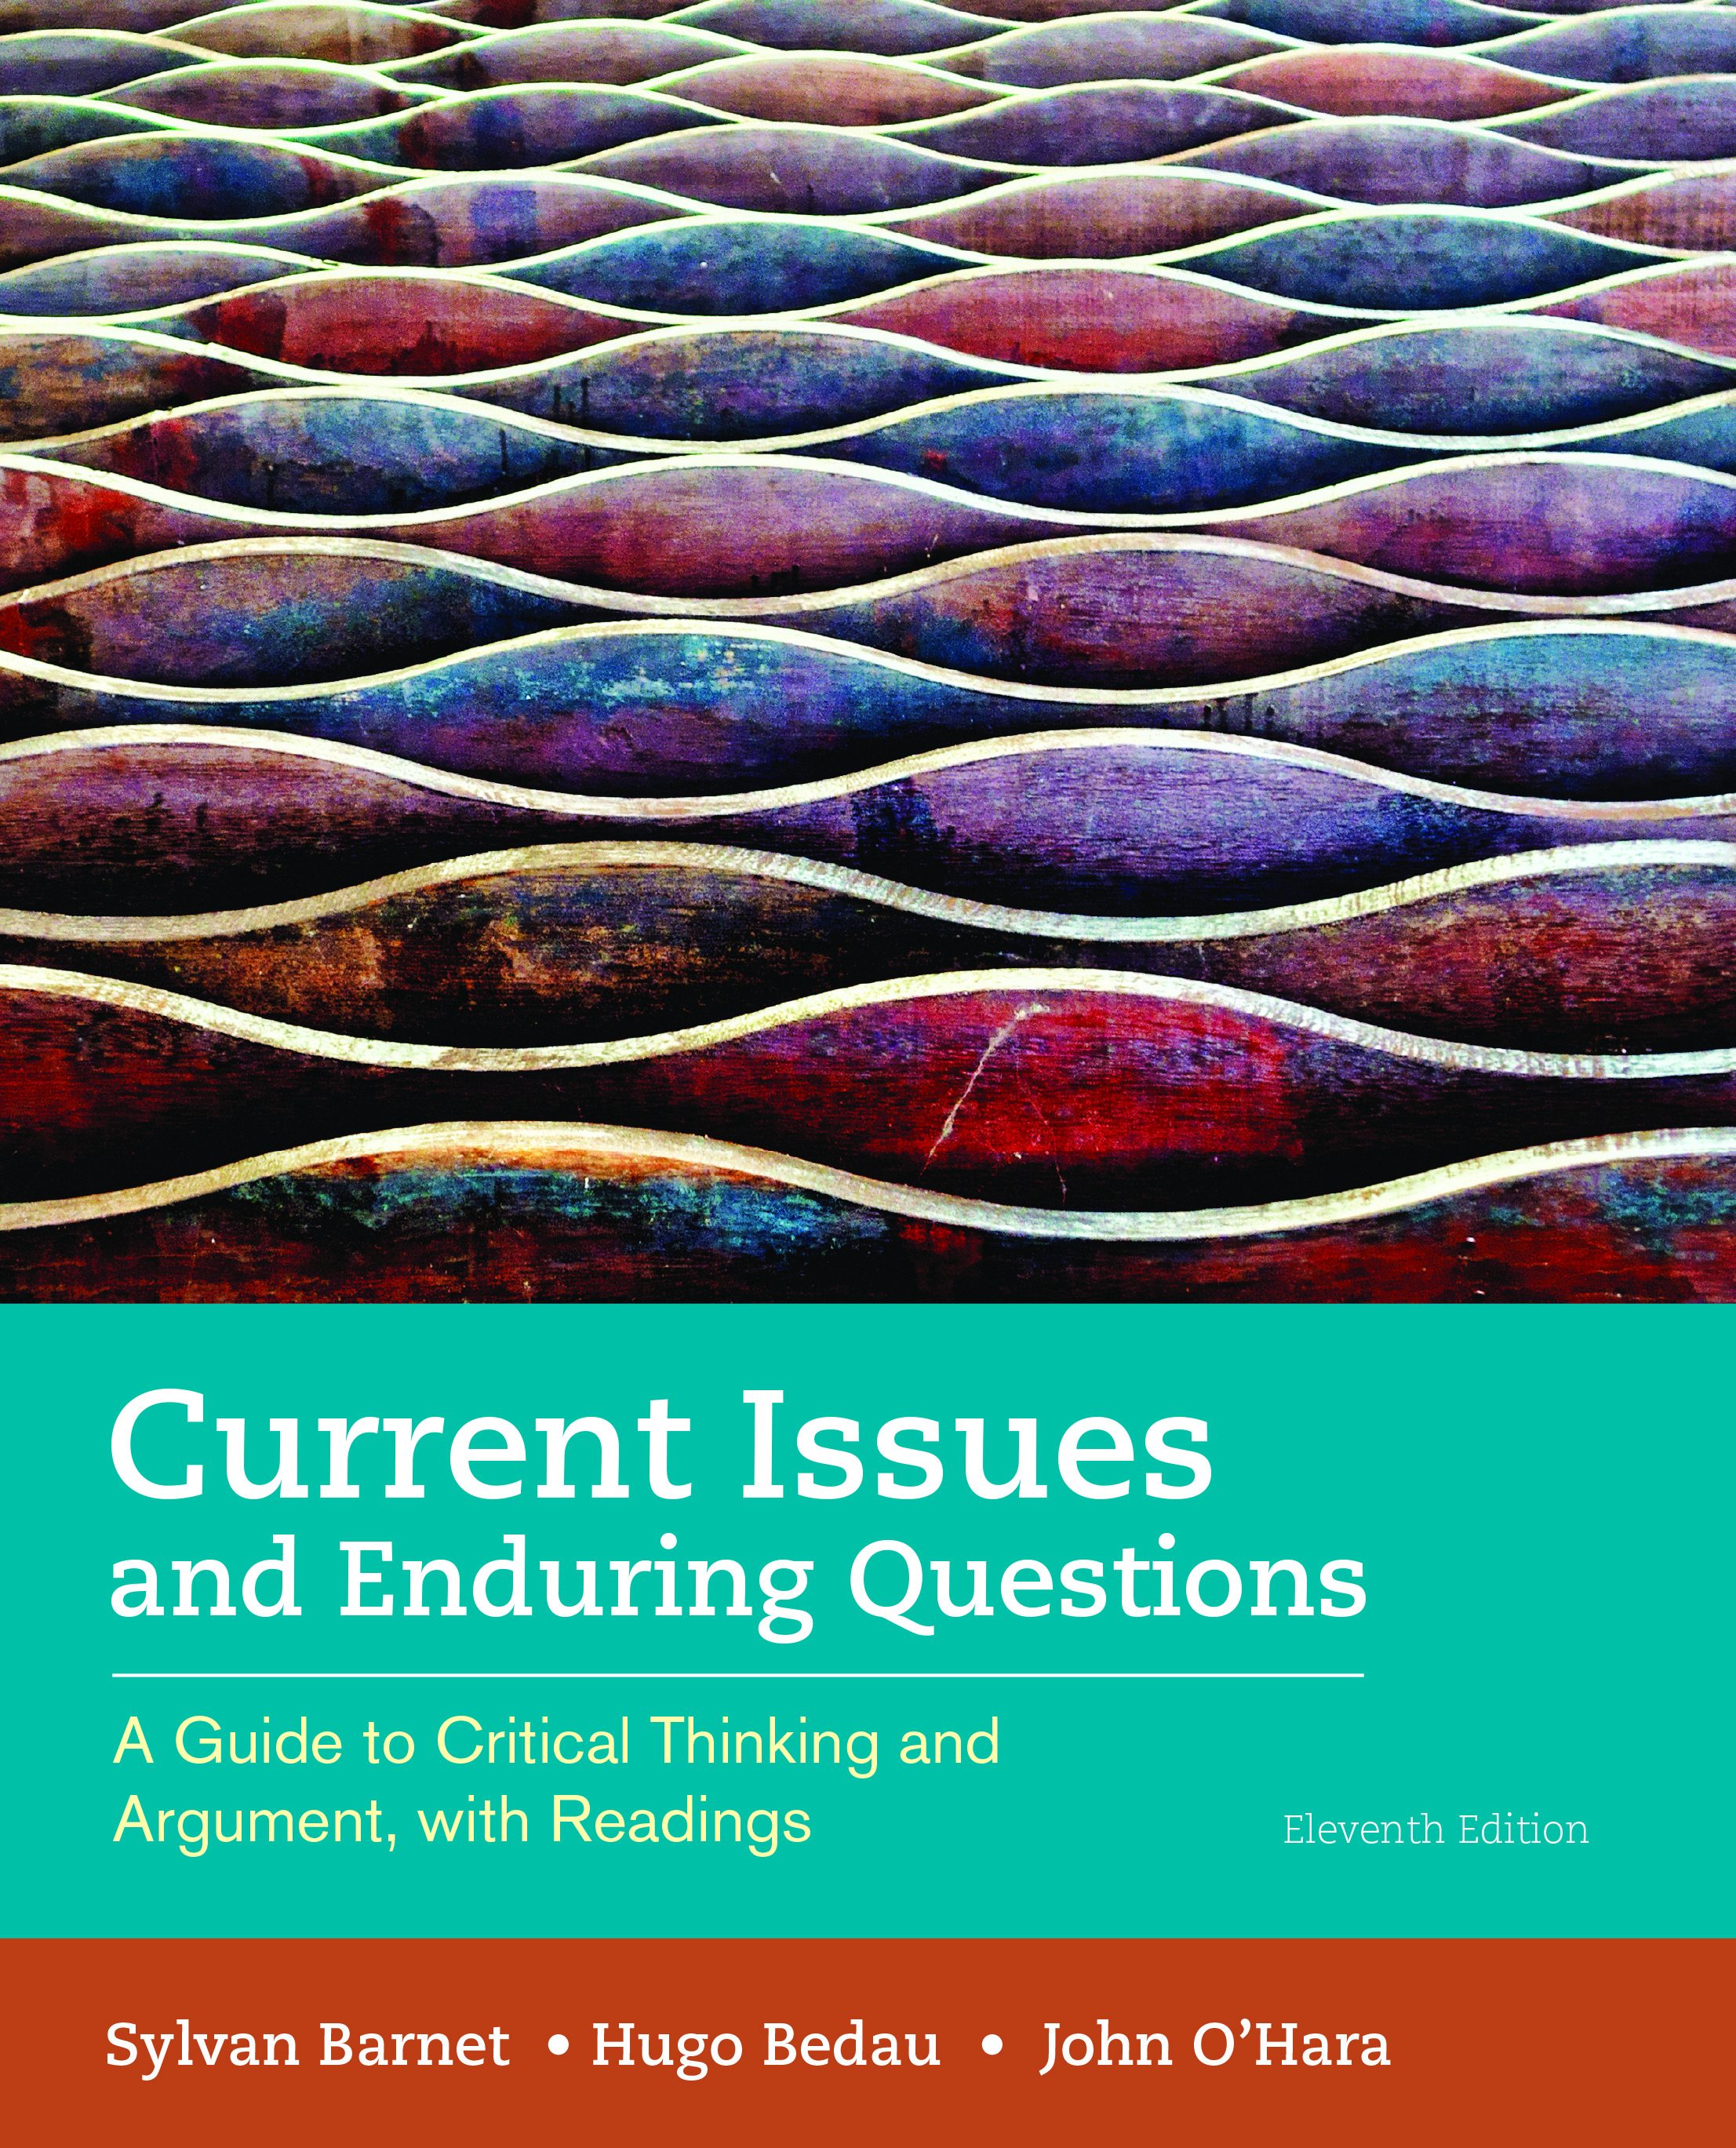 current issues and enduring questions student essays Current issues and enduring questions : a guide to critical thinking and argument, with readings / [edited by] sylvan barnet, hugo bedau.